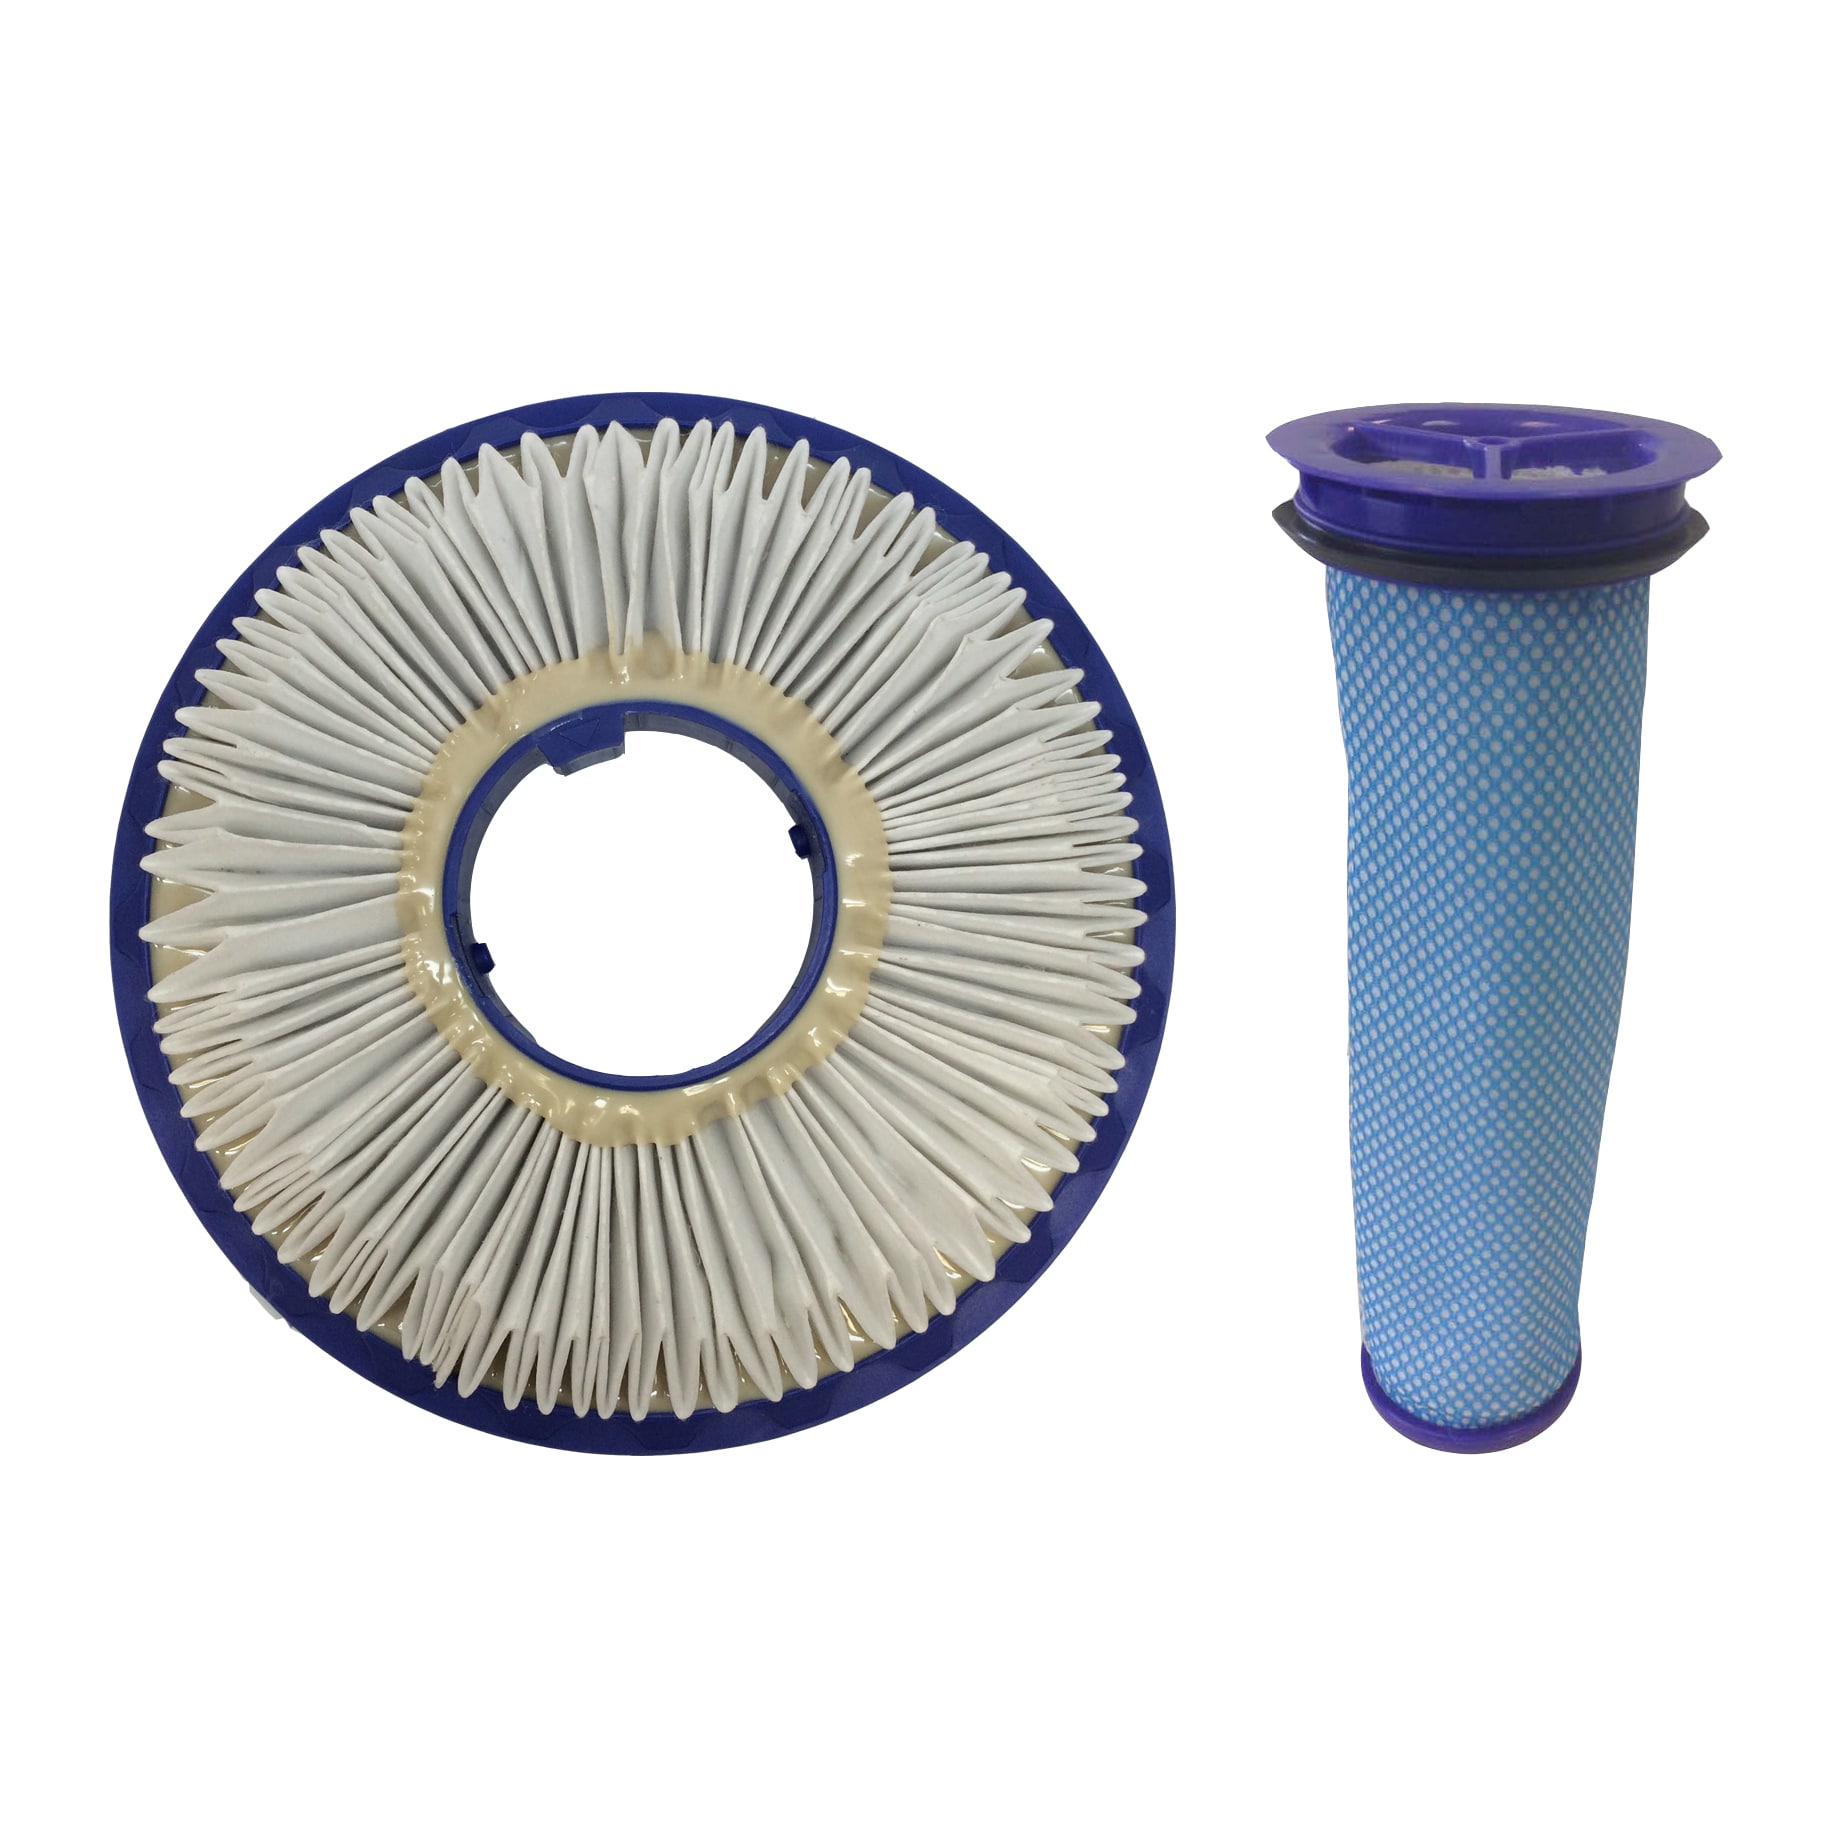 Crucial Dyson DC41 DC65 and DC66 Hepa Post Filter and Was...